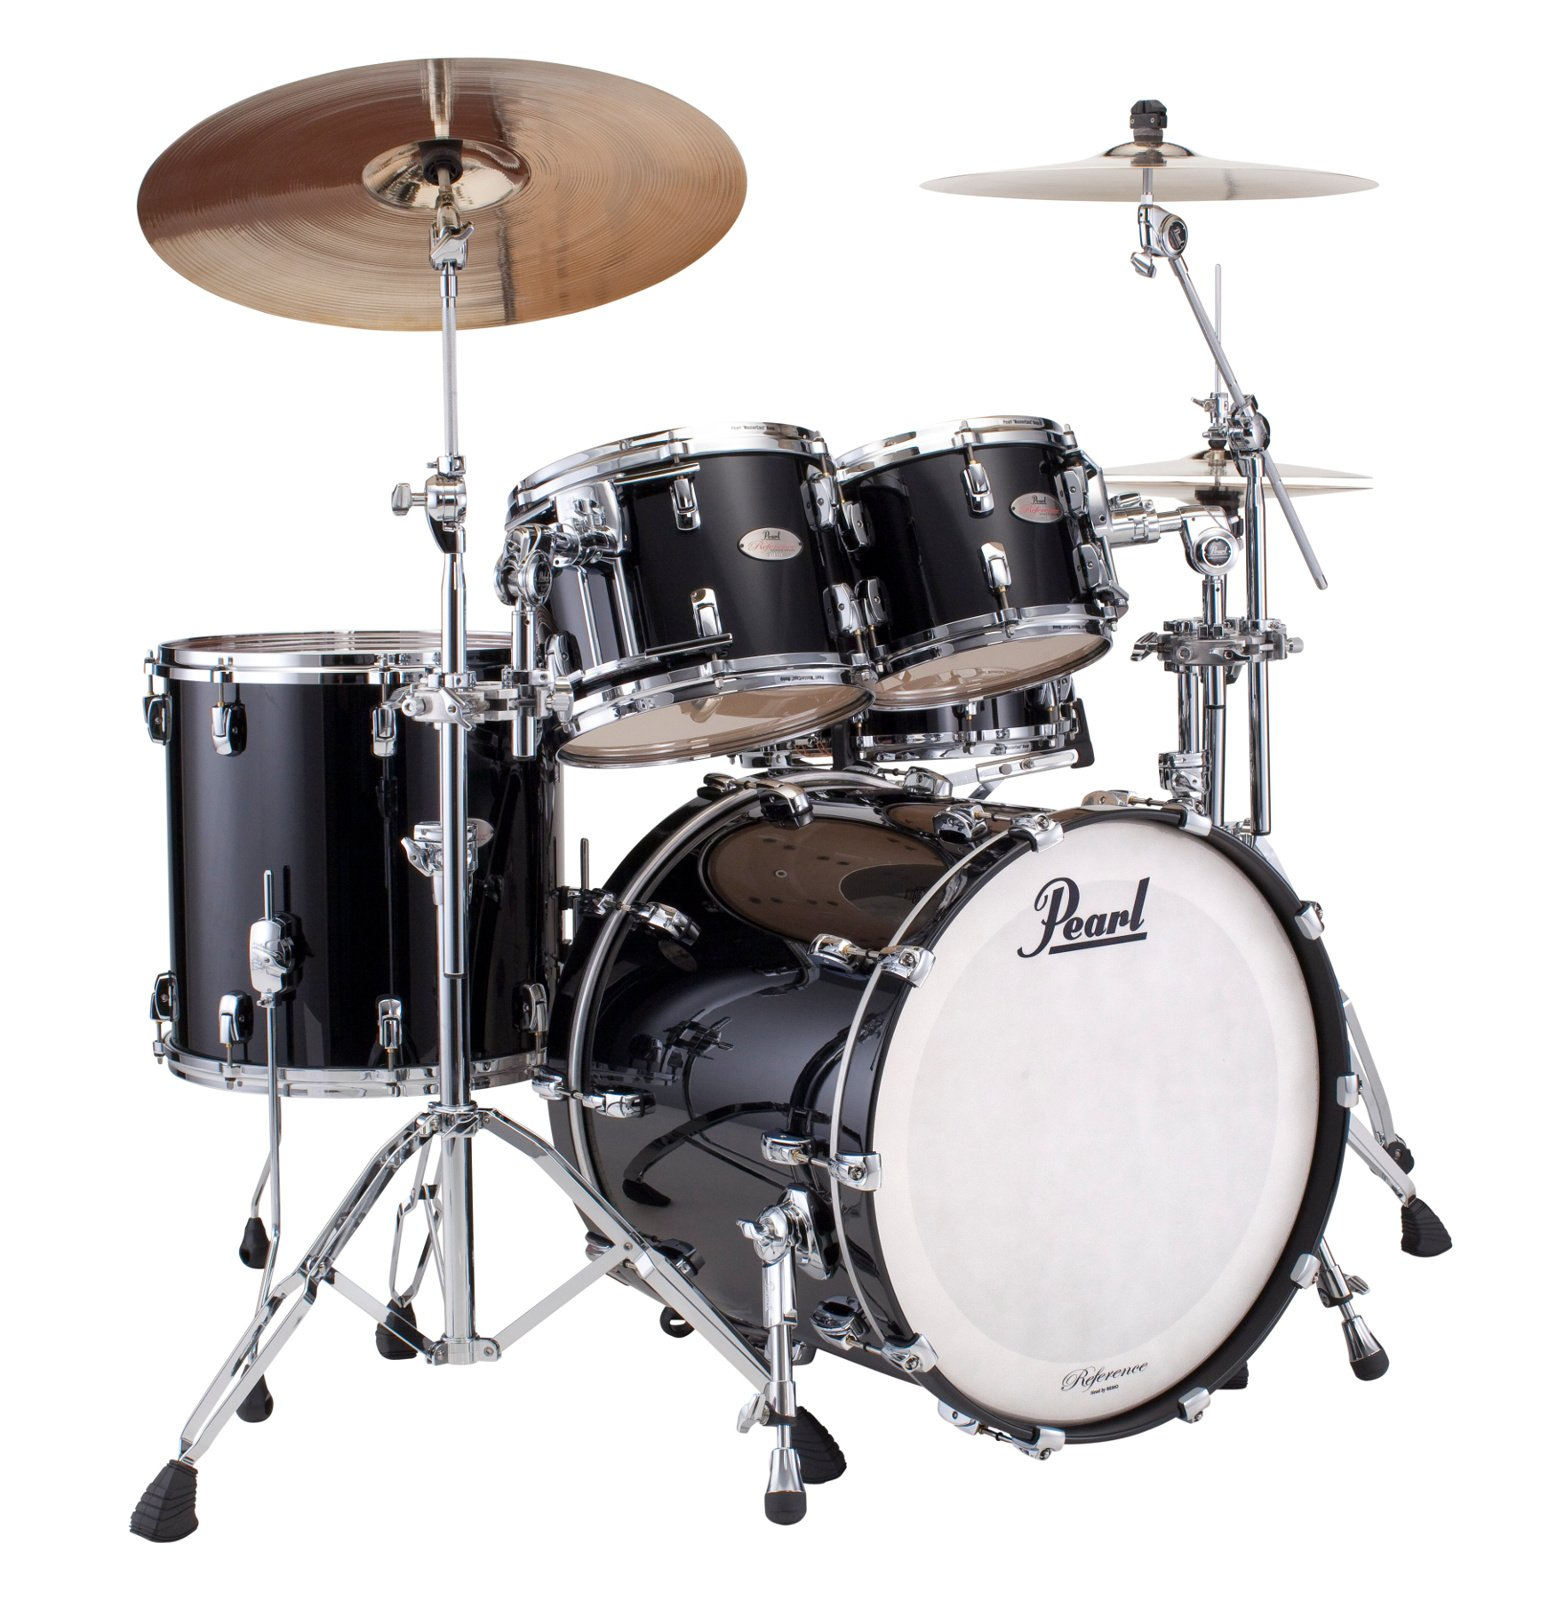 4-Piece Reference Shell Pack in Piano Black